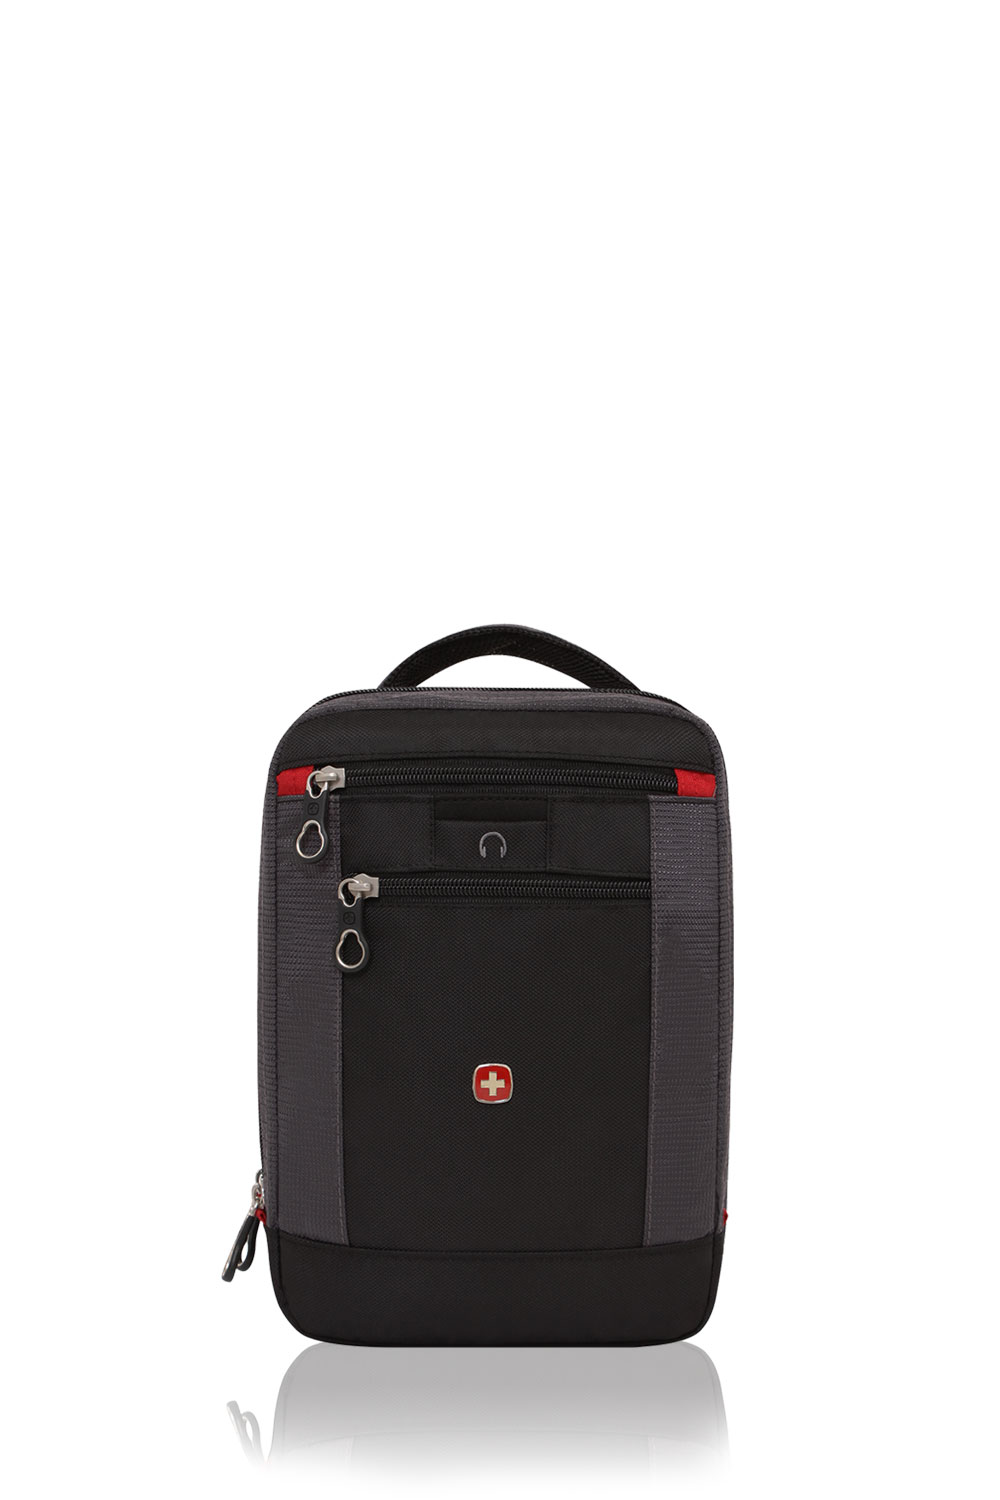 SWISSGEAR 1092 Vertical Travel Bag - Black